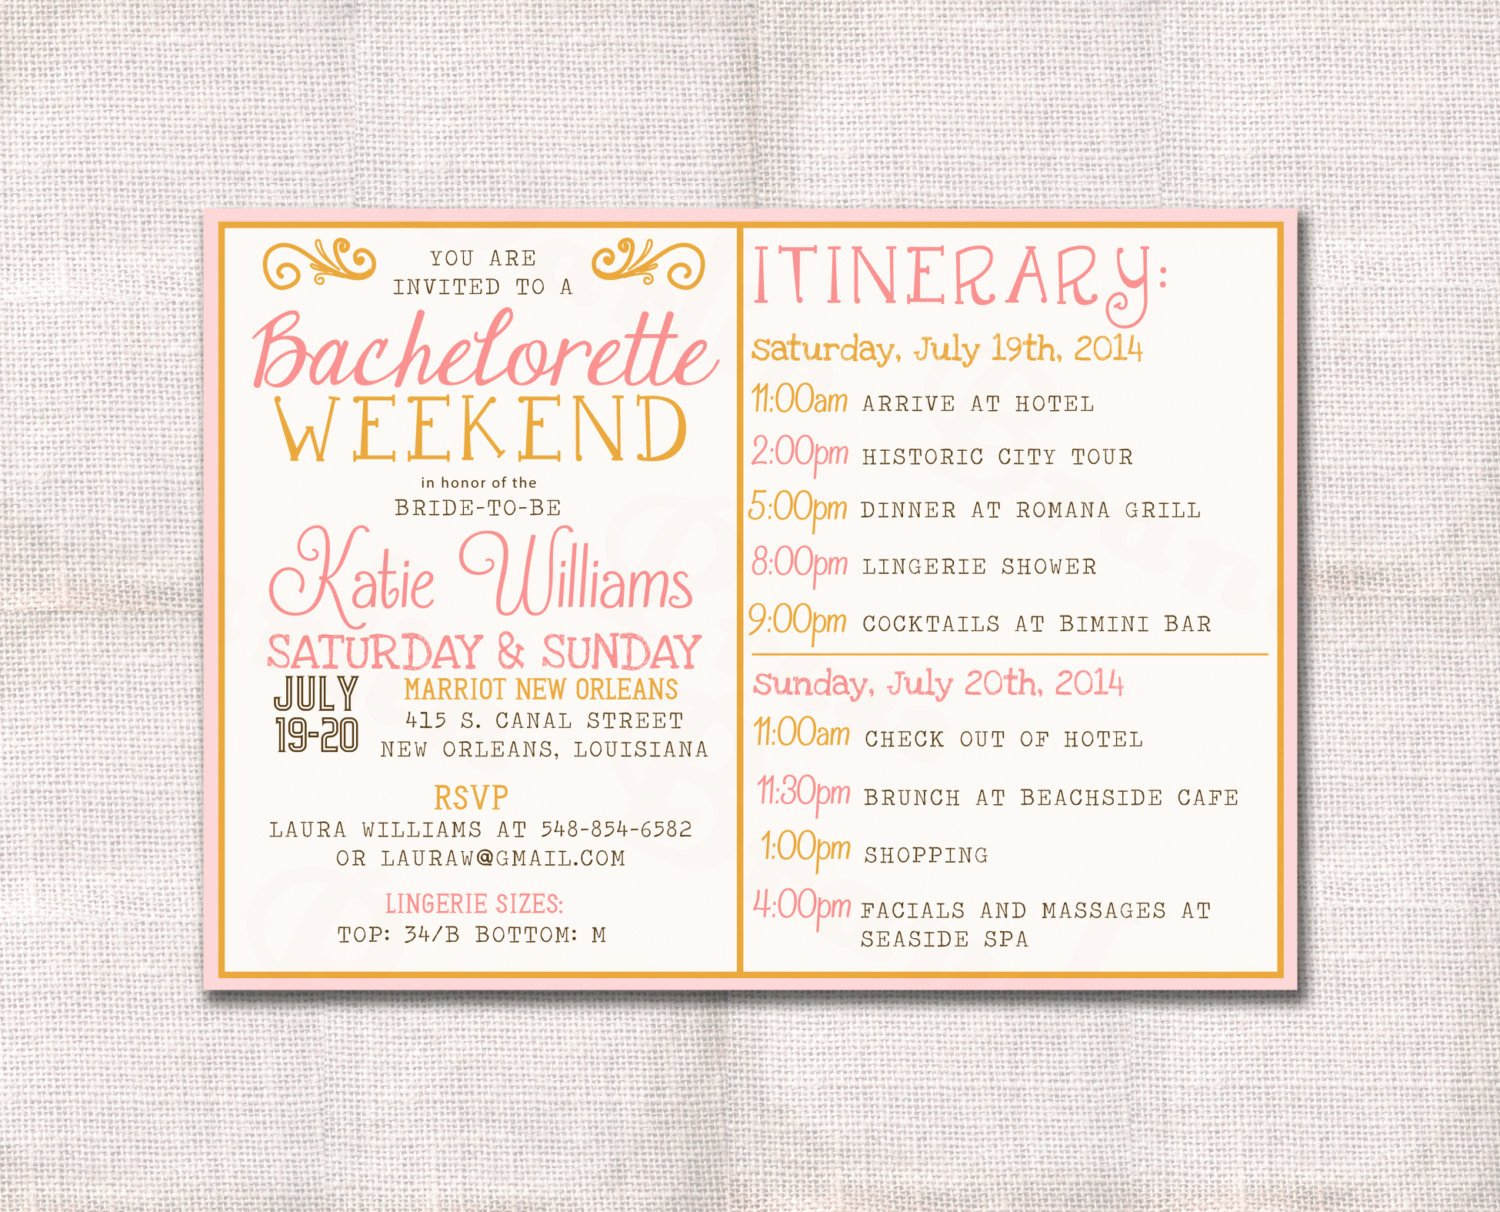 Bachelorette Party Agenda Template Beautiful Bachelorette Party Weekend Invitation and Itinerary Custom